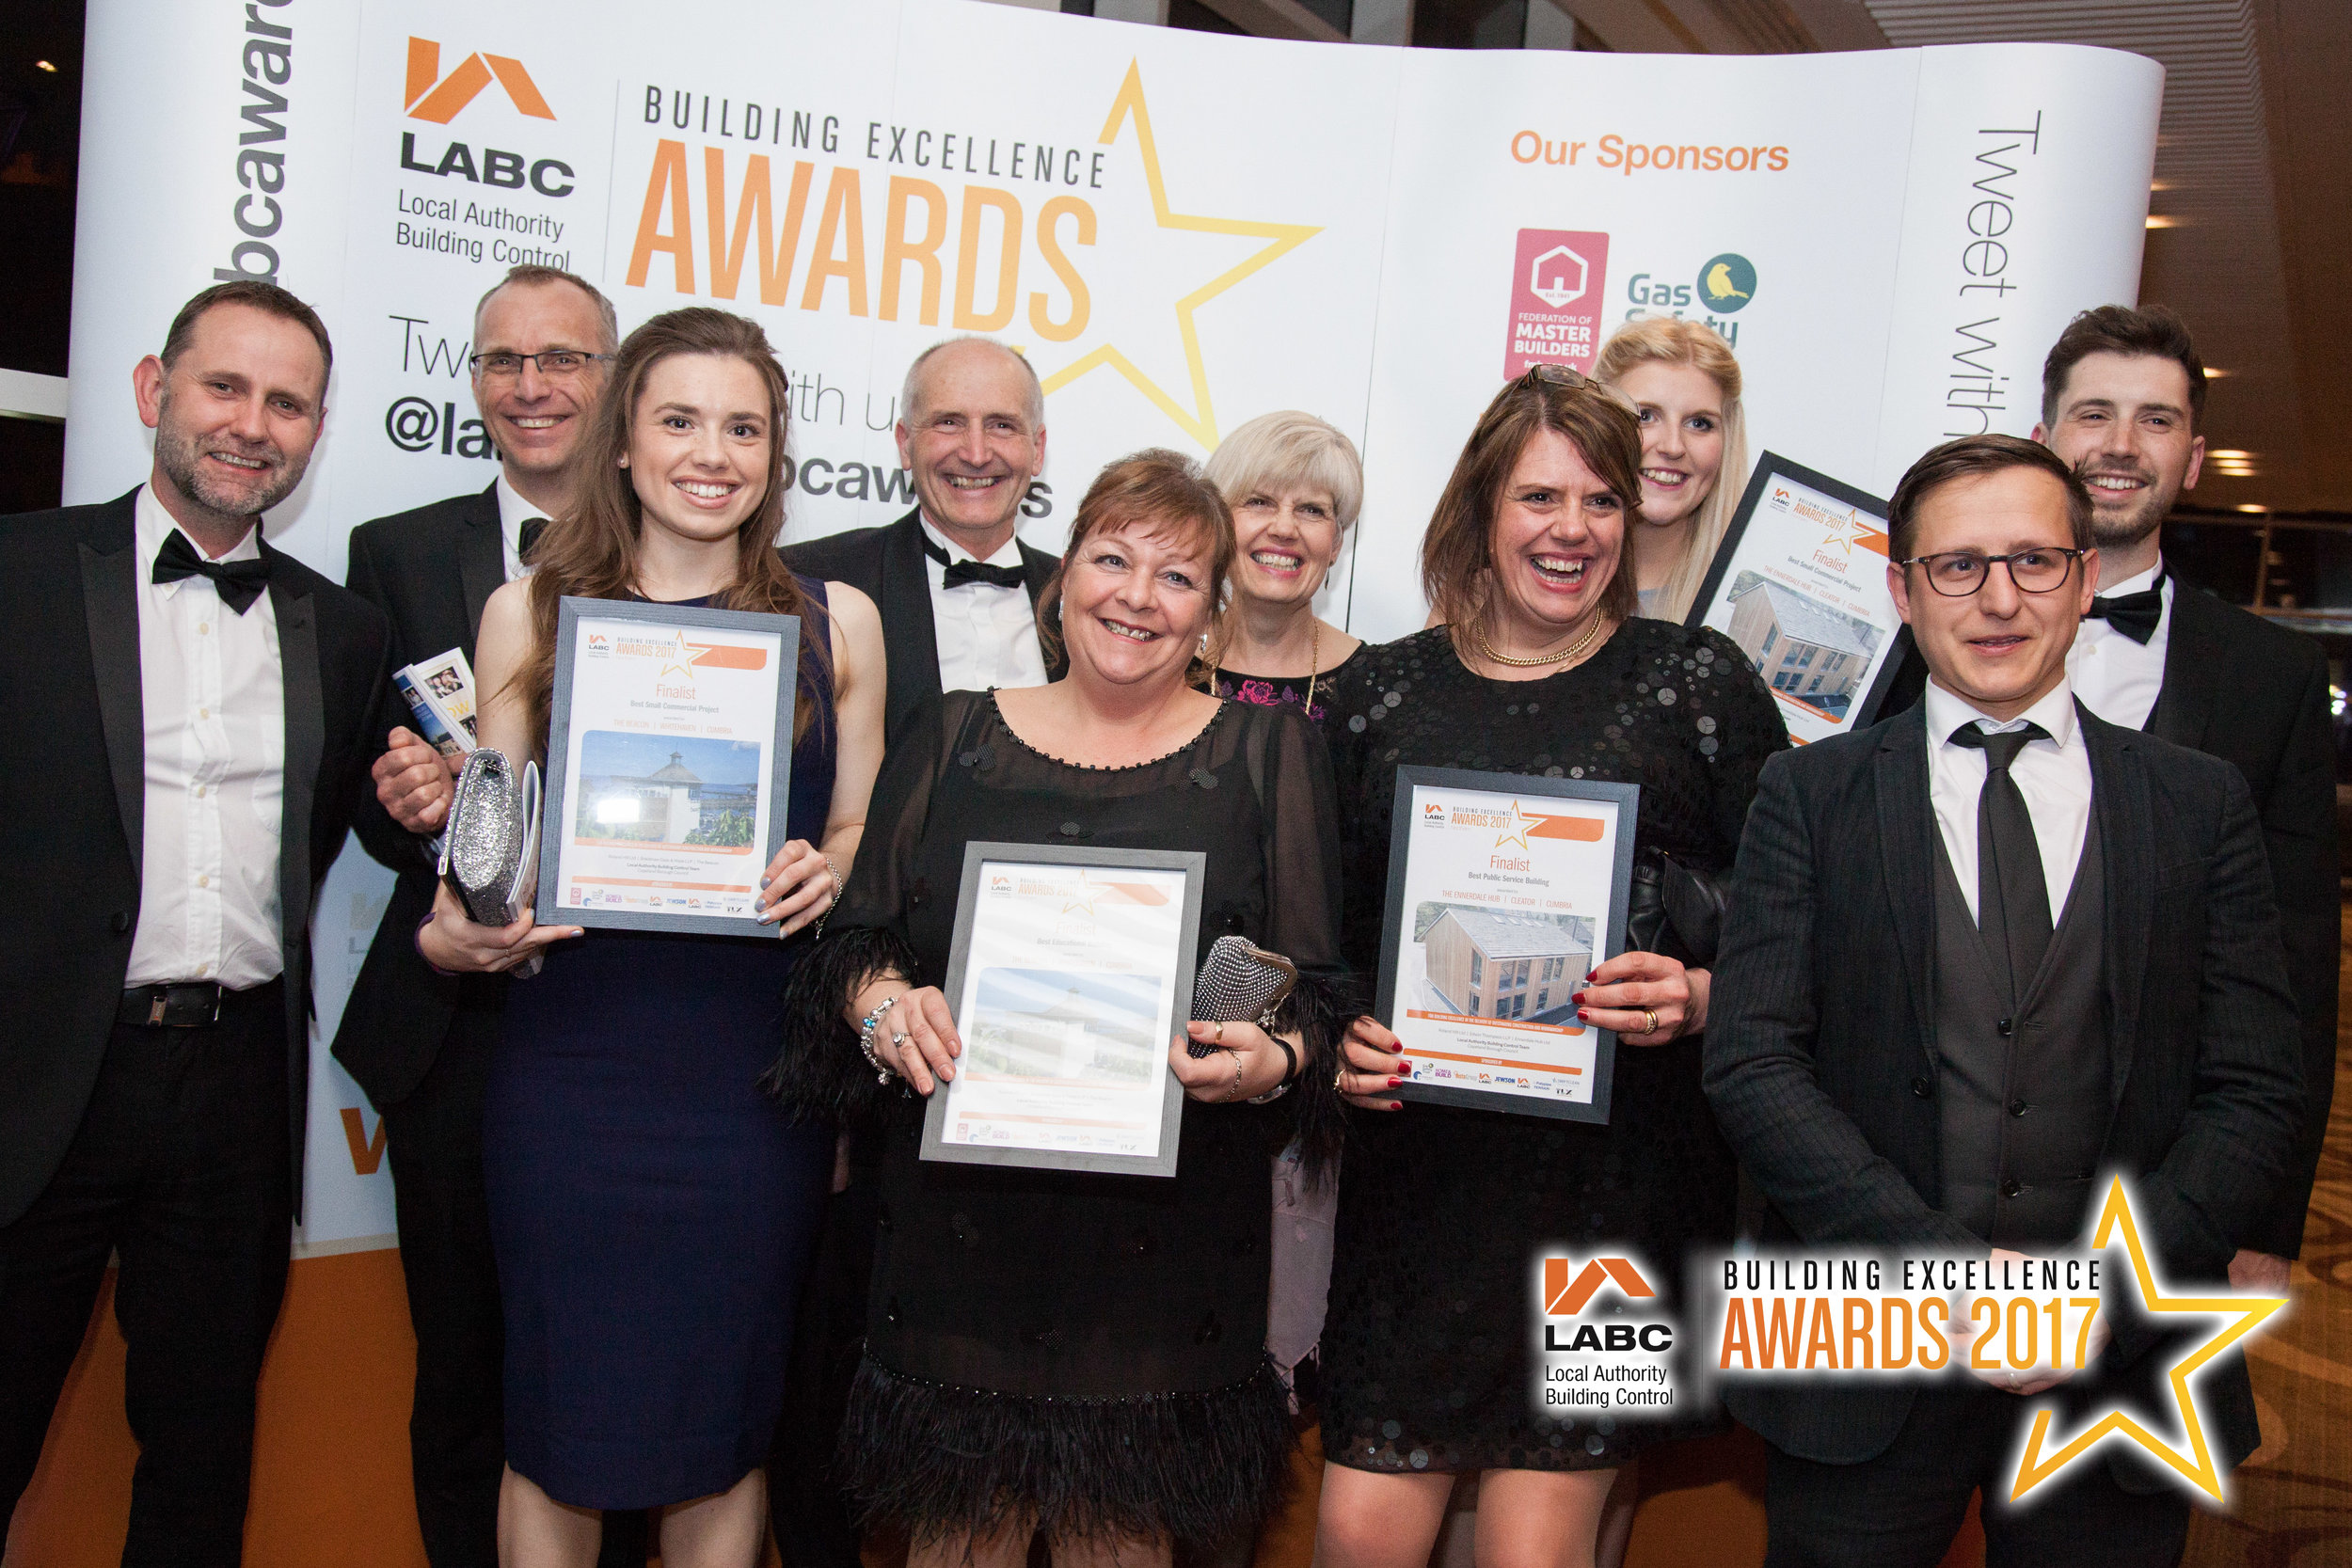 LABC Building Excellence Awards 2017 Northern